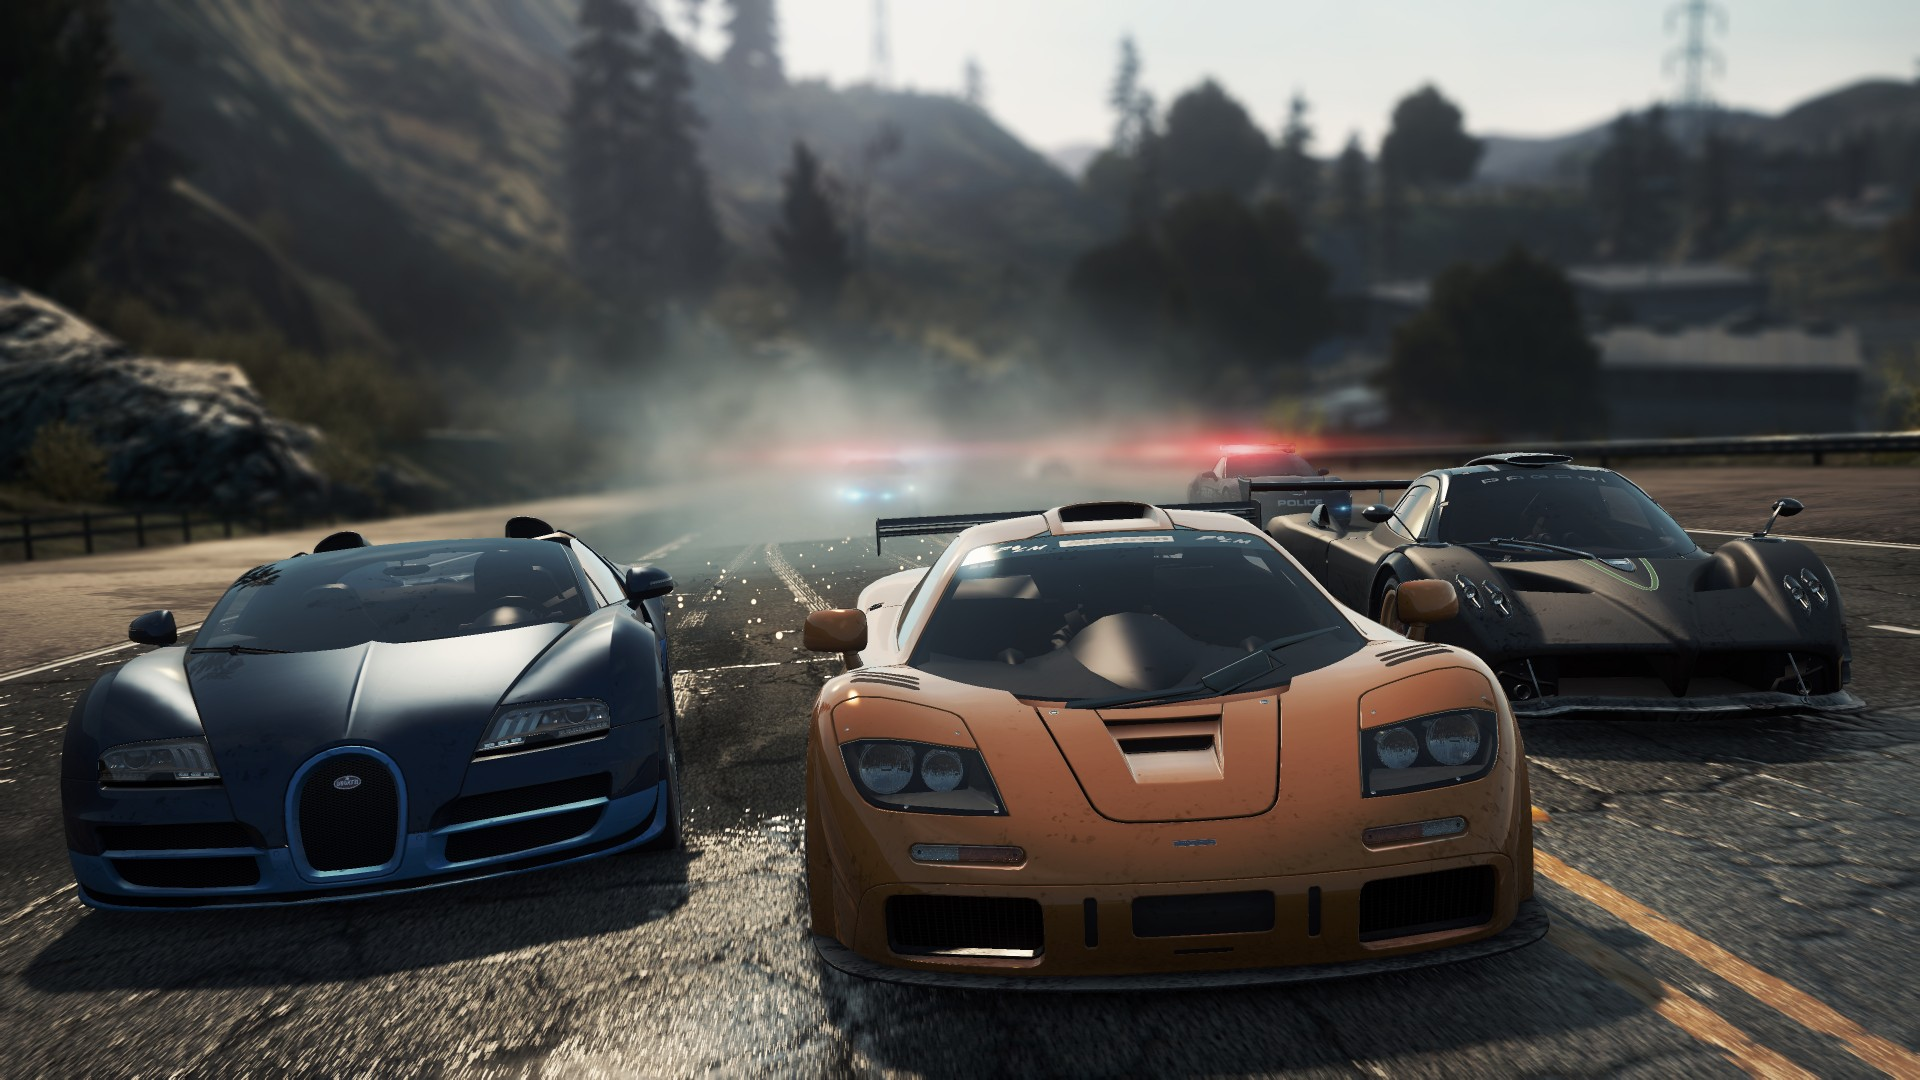 need for speed wallpaper 40290